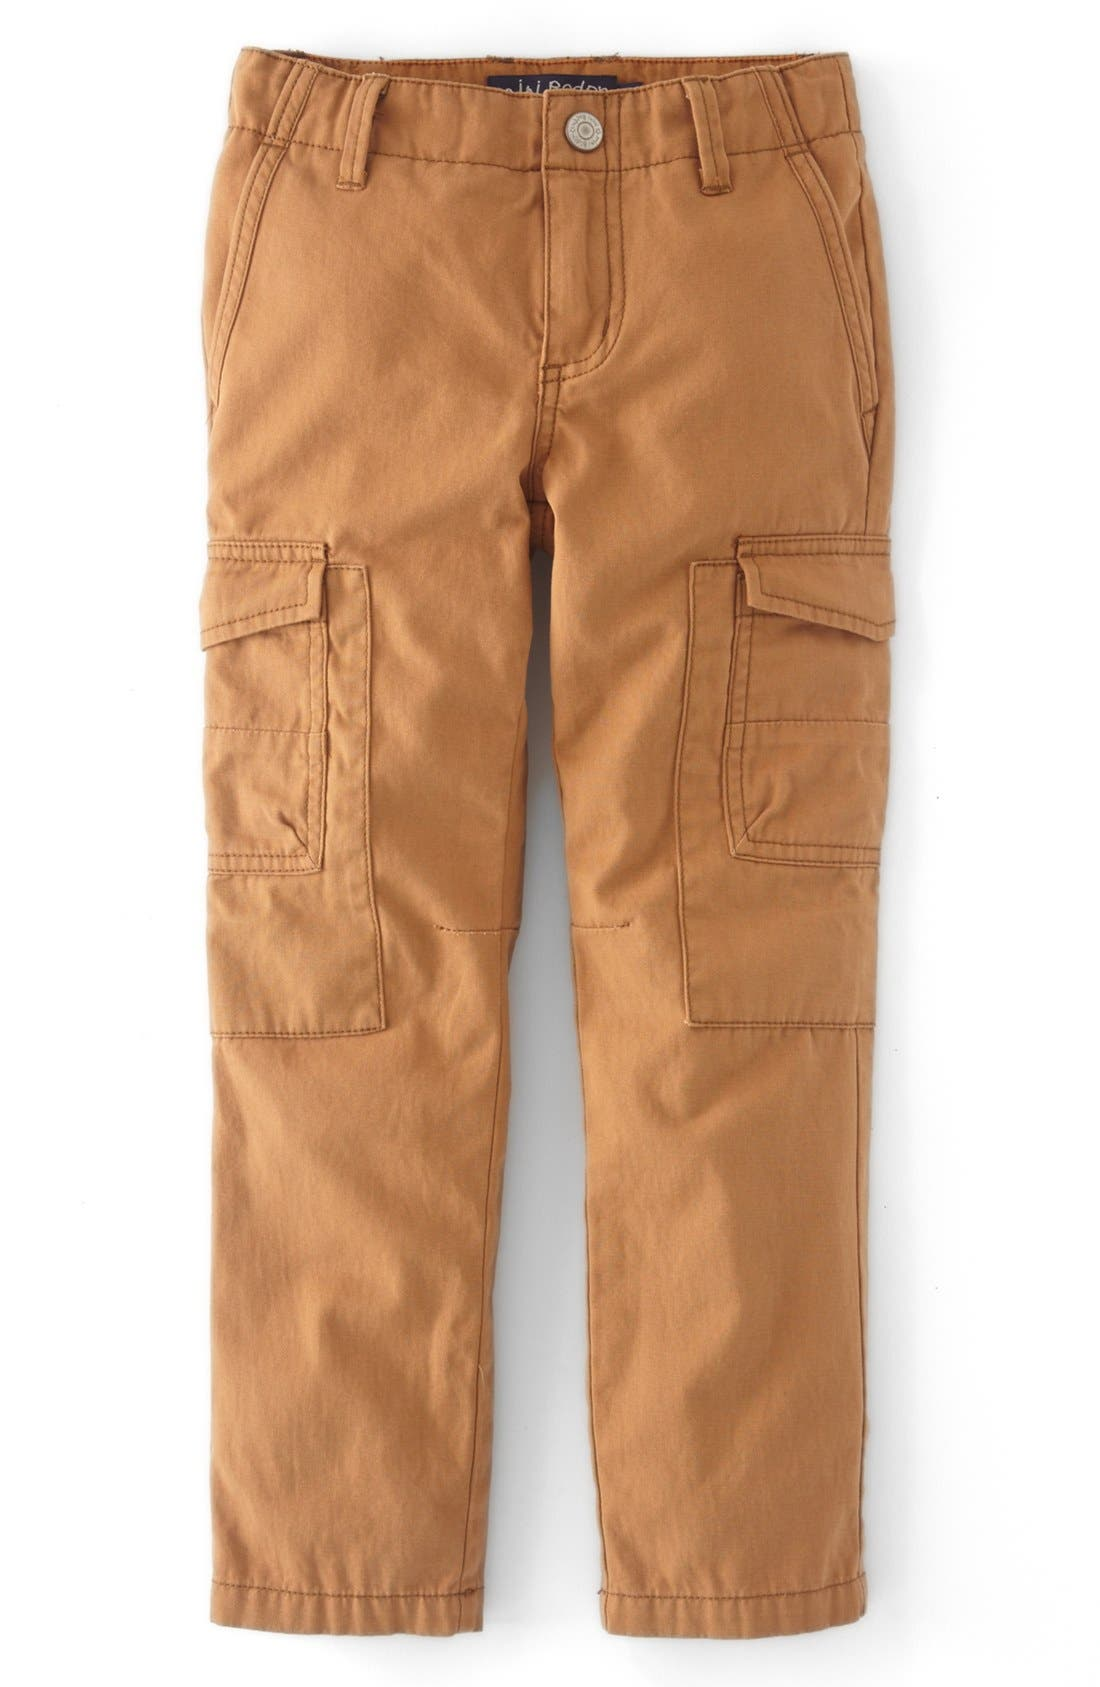 Alternate Image 1 Selected - Mini Boden Slim Fit Cargo Pants (Toddler Boys, Little Boys & Big Boys)